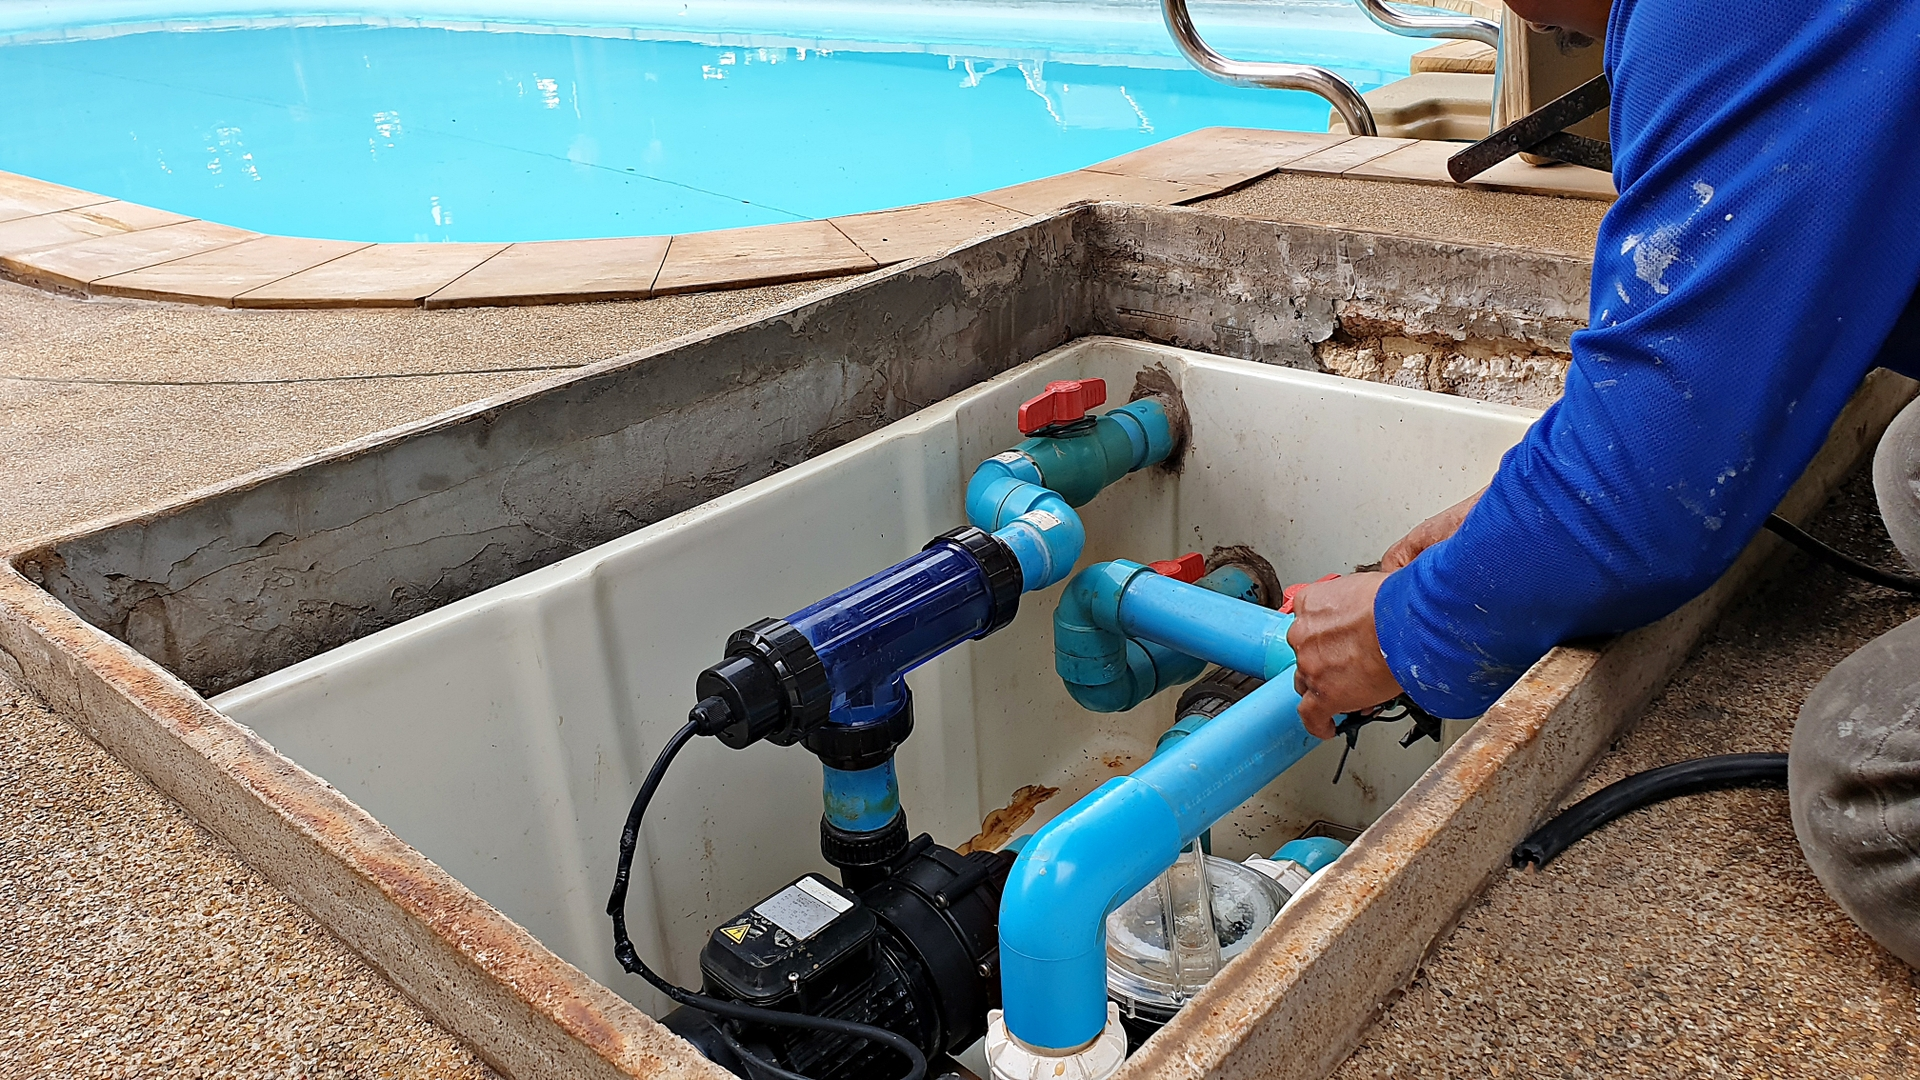 Following the National Electrical Code, proper bonding and grounding of pool pumps ensure a safe pool environment.